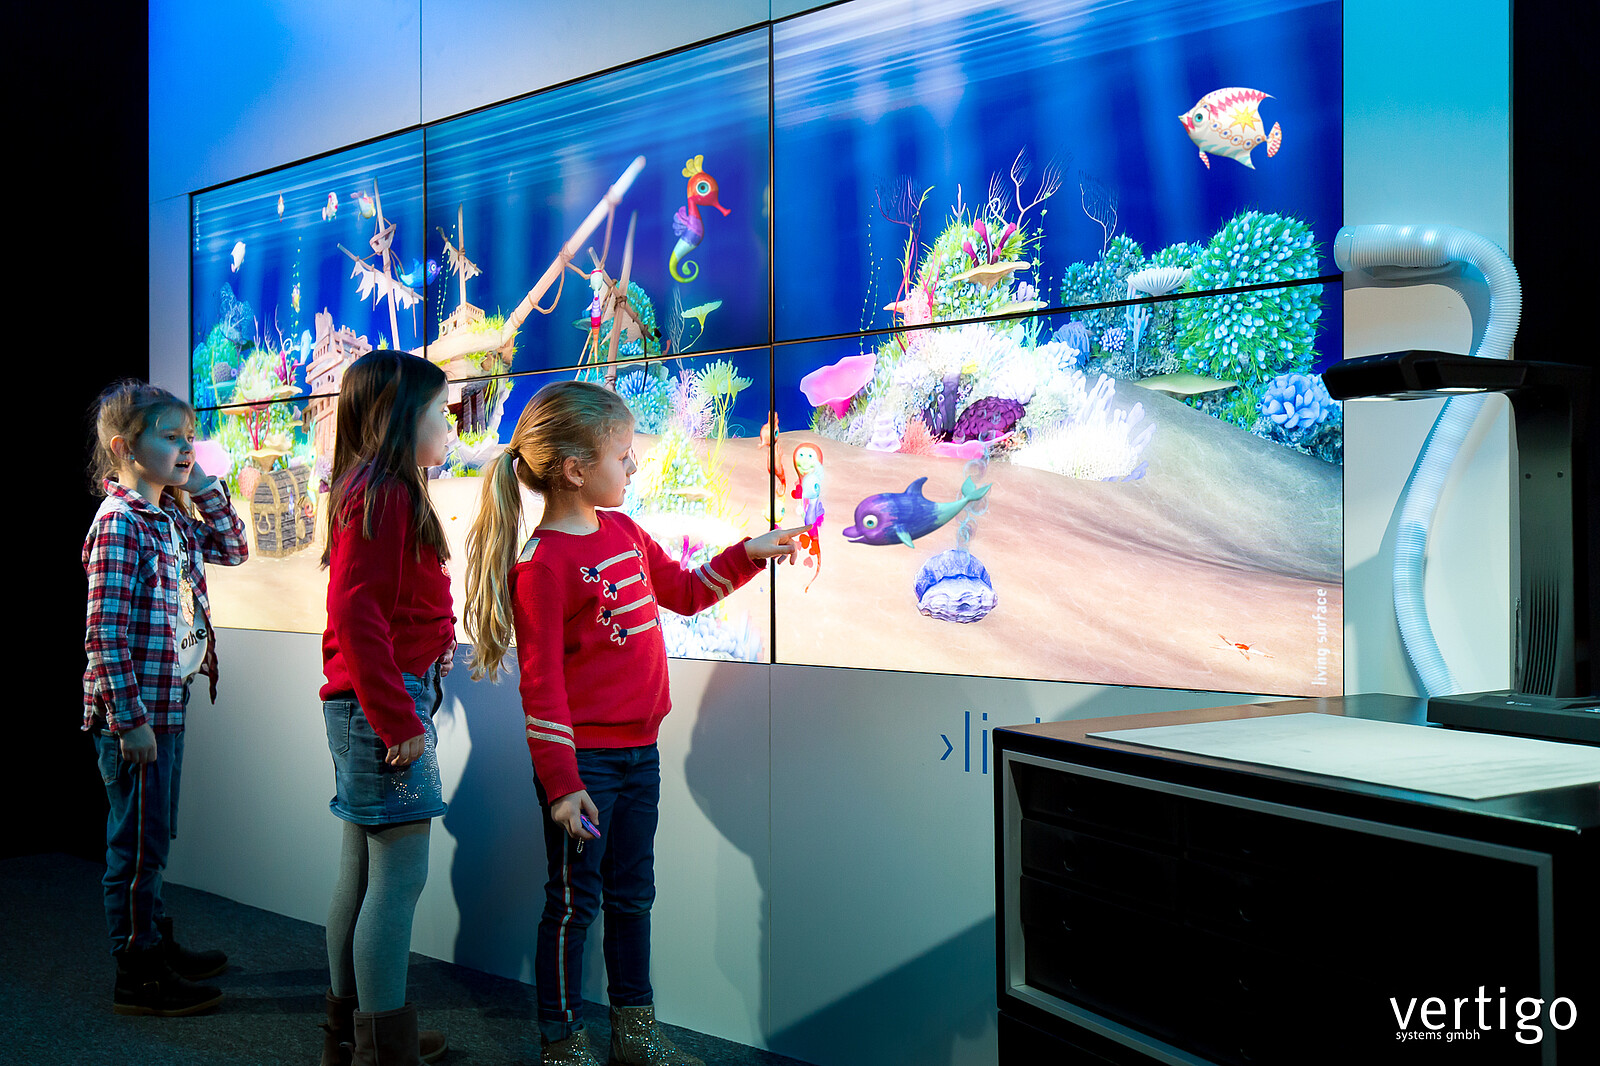 immerse into the virtual world, kids play together and with the creatures